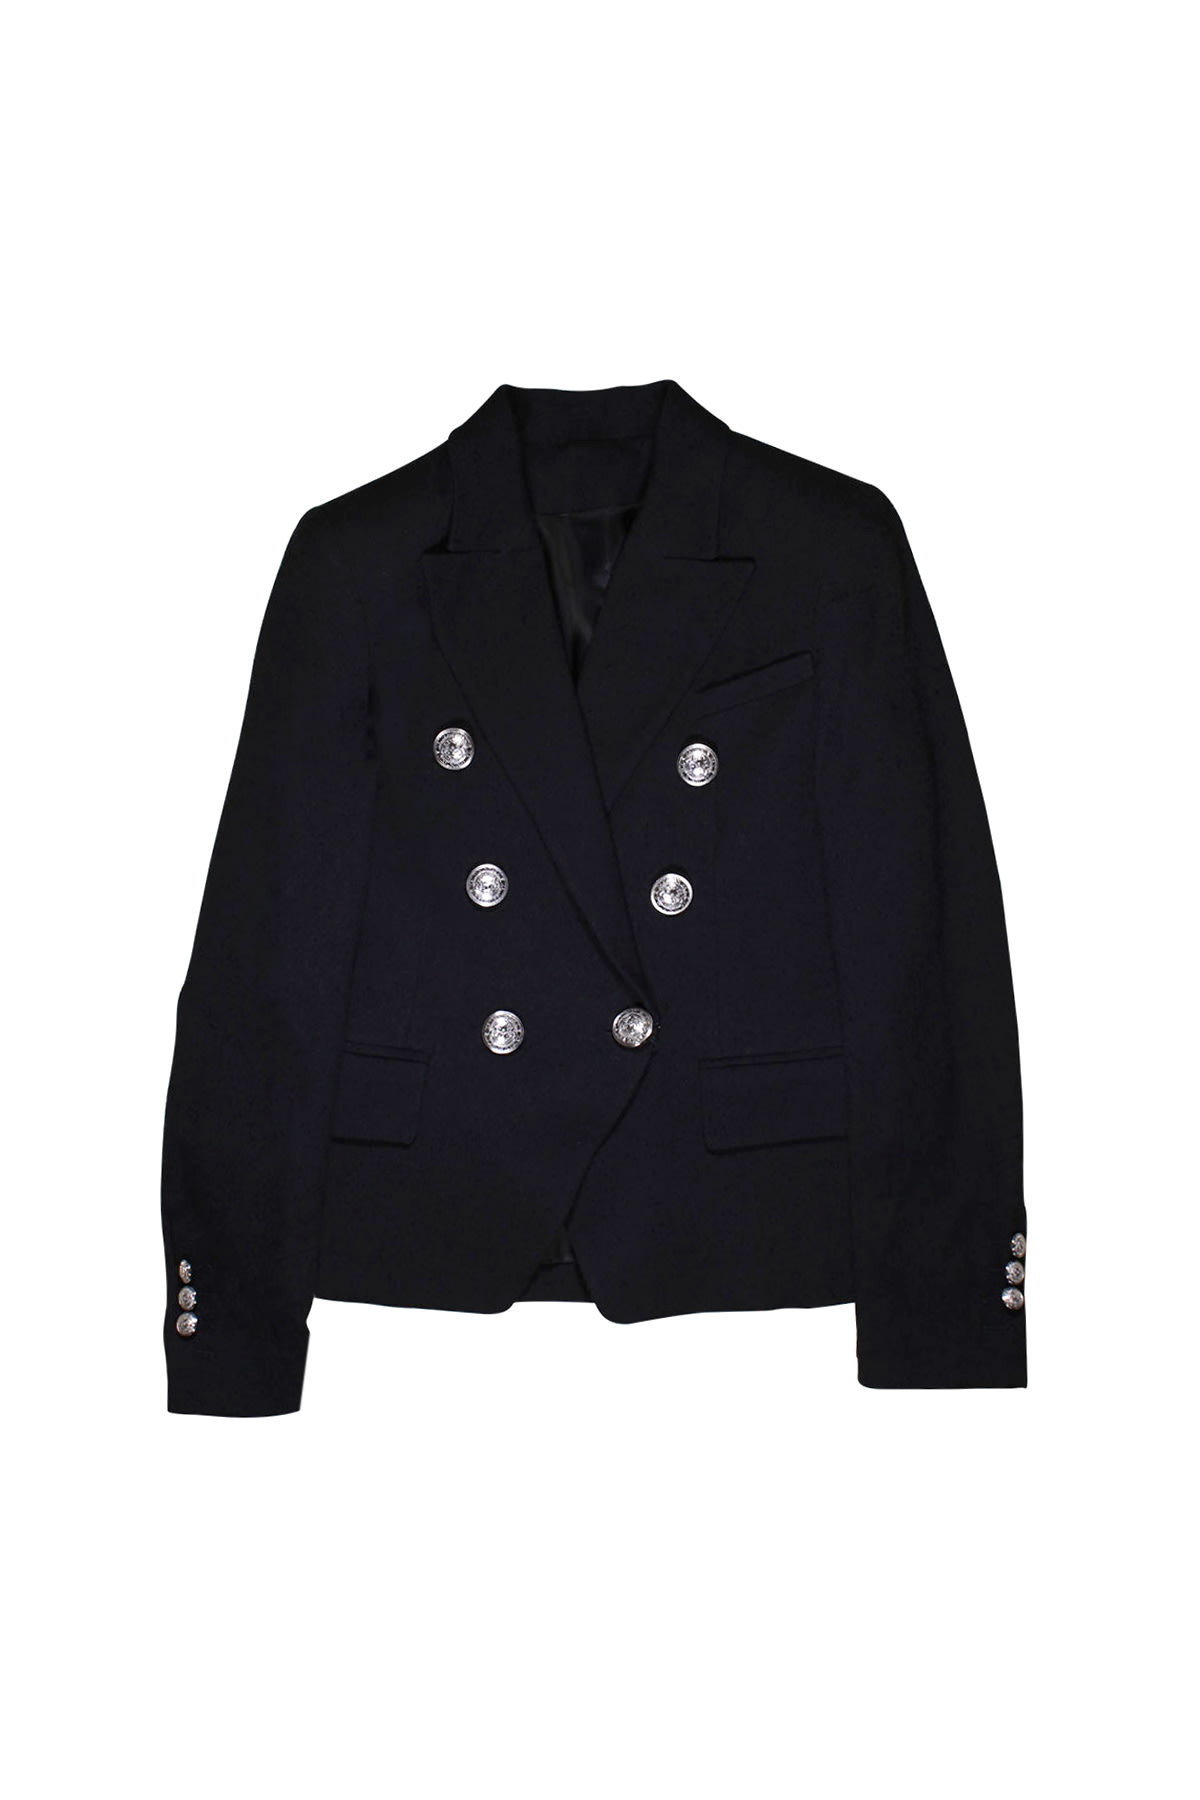 Balmain Black Double Breasted Teen Jacket